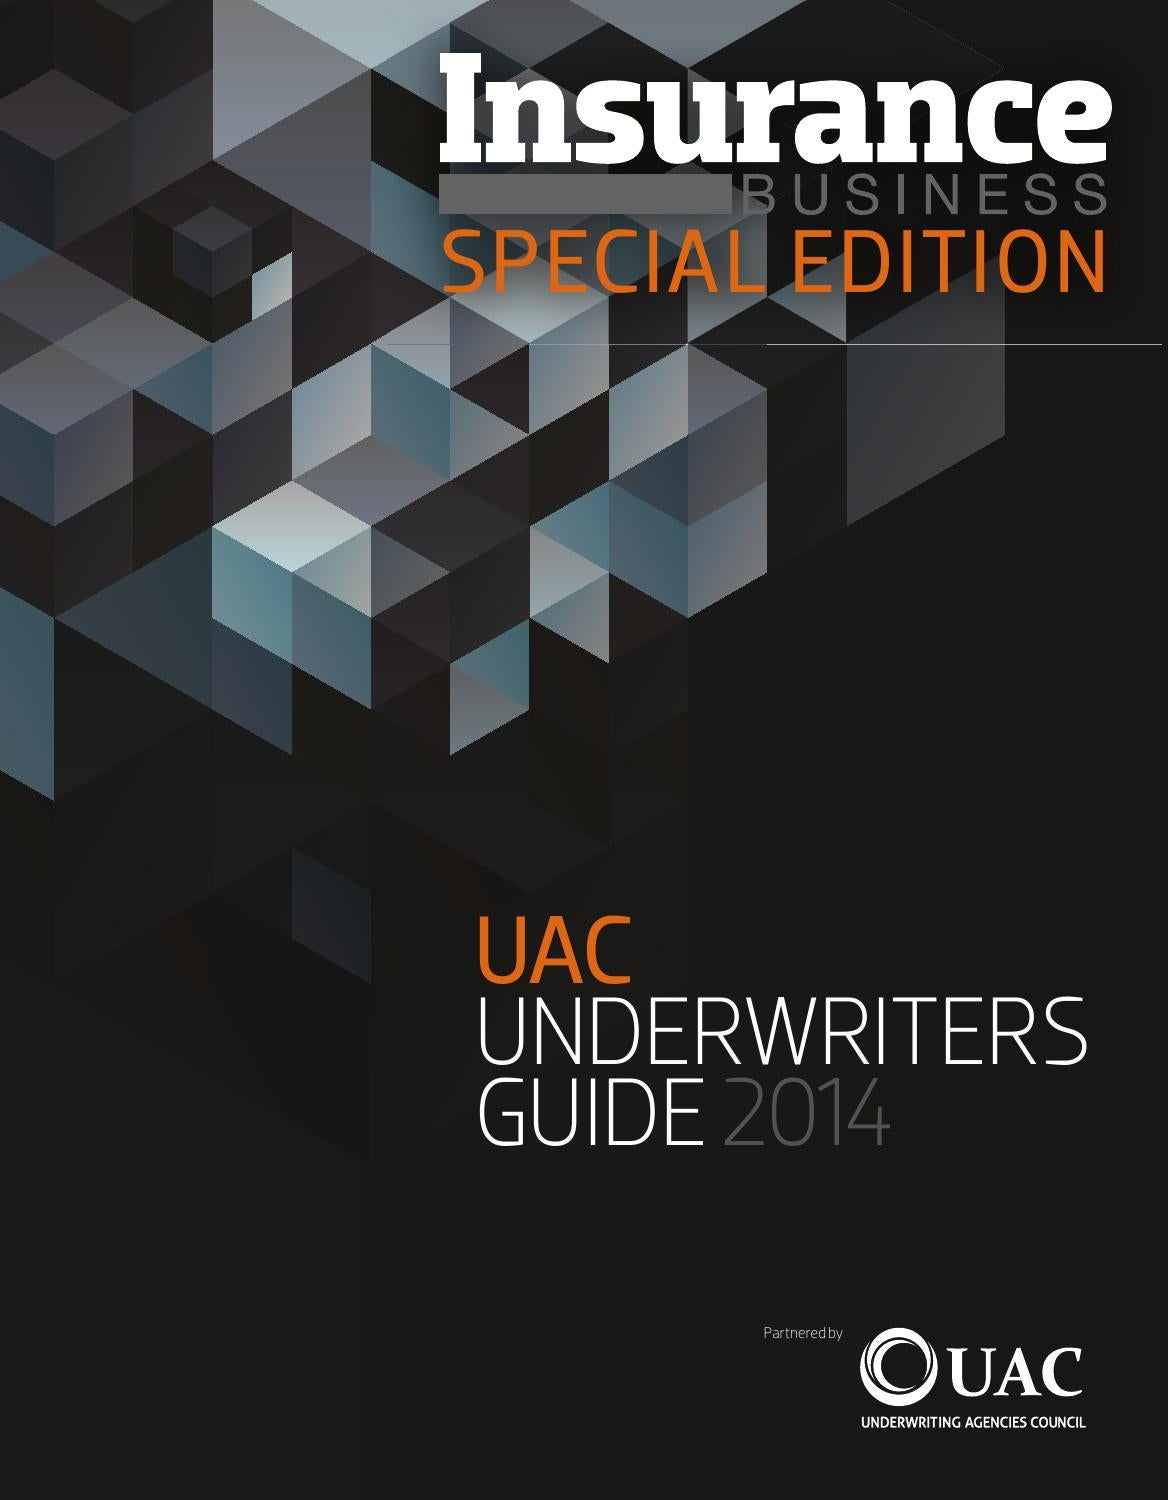 insurance business special edition uac underwriters guide by insurance business special edition uac underwriters guide 2016 by key media issuu